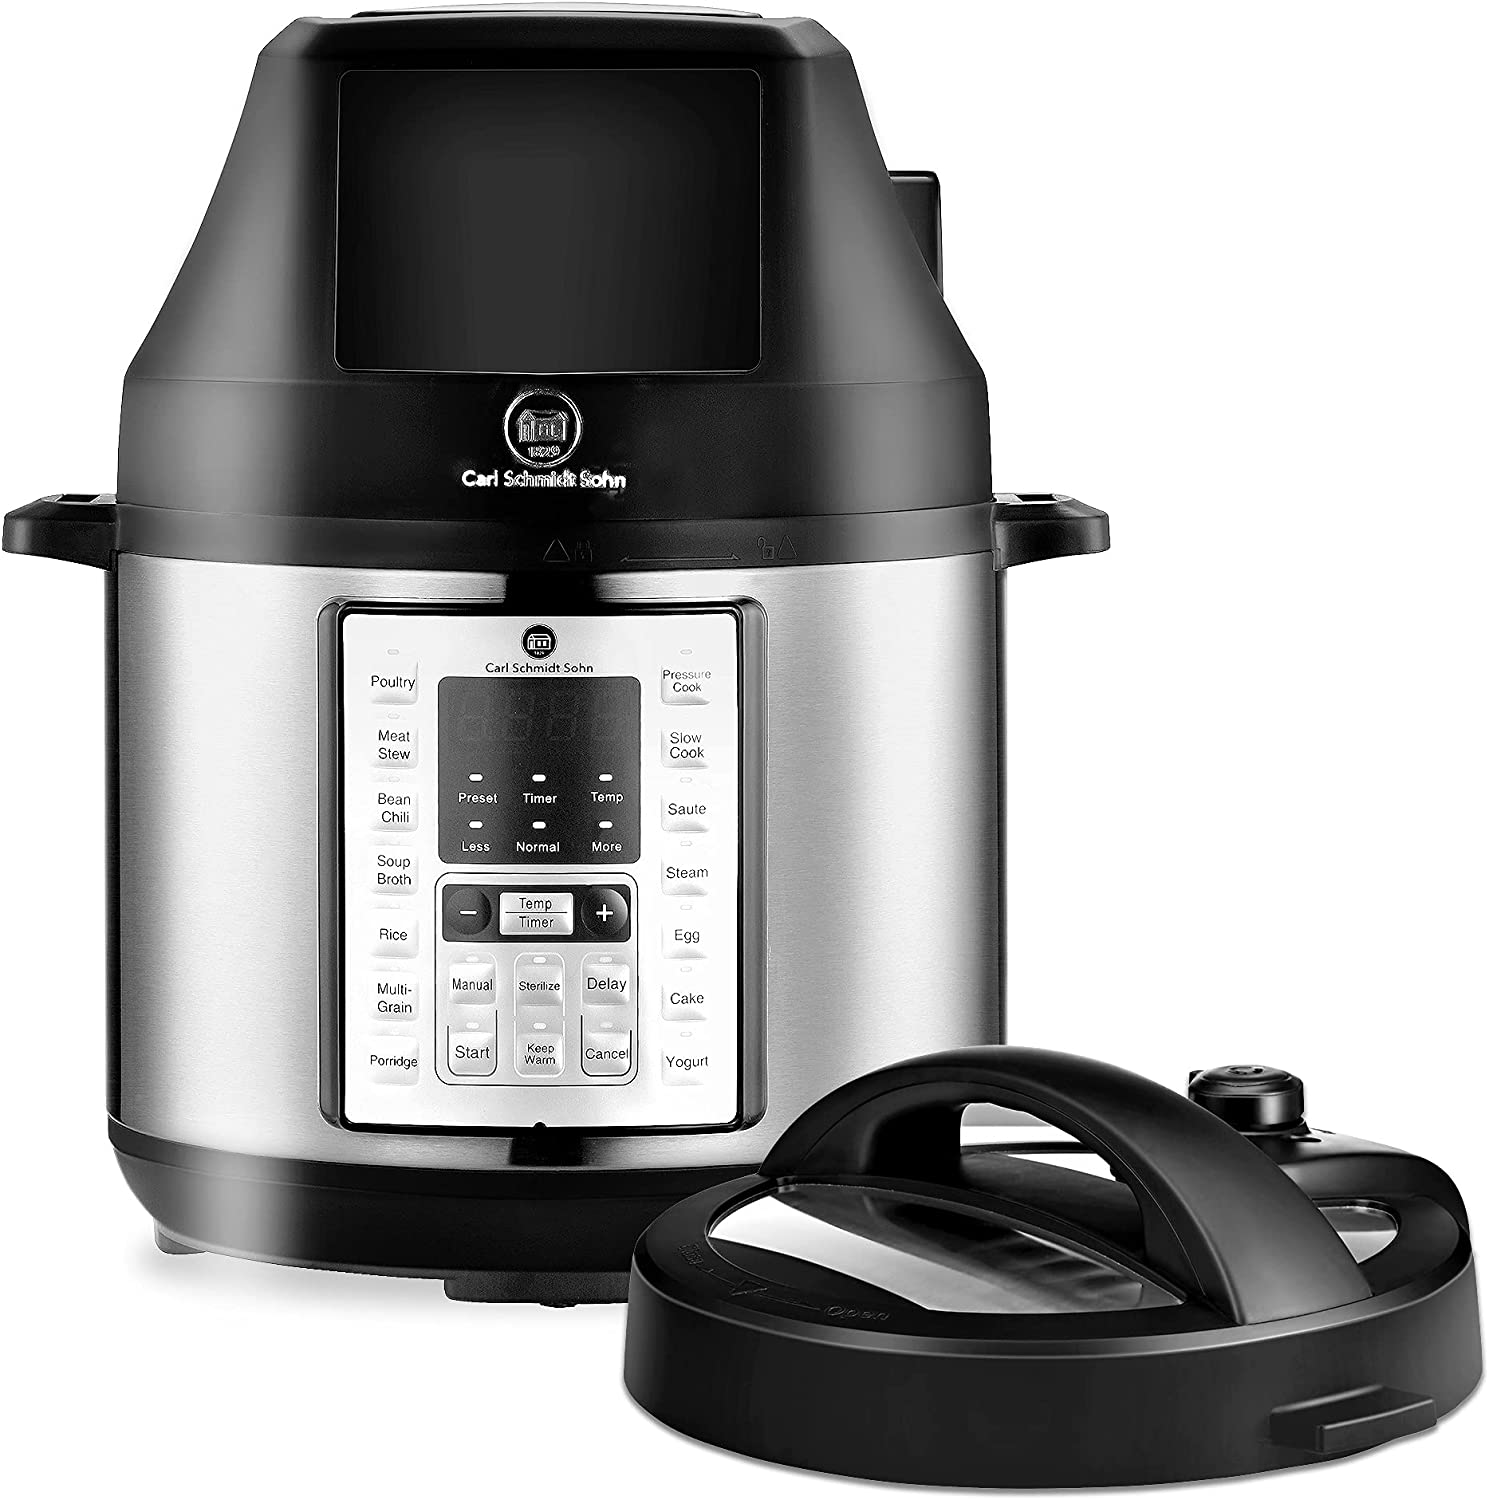 6.5Qt Pressure Cooker and Air Fryer Combos, 21-in-1 Programmable Pressure Pot with Detachable Pressure & Crisp Lid, LED Digital Touchscreen, 3Qt Air Fry Basket,Free Recipe Book, 1500W